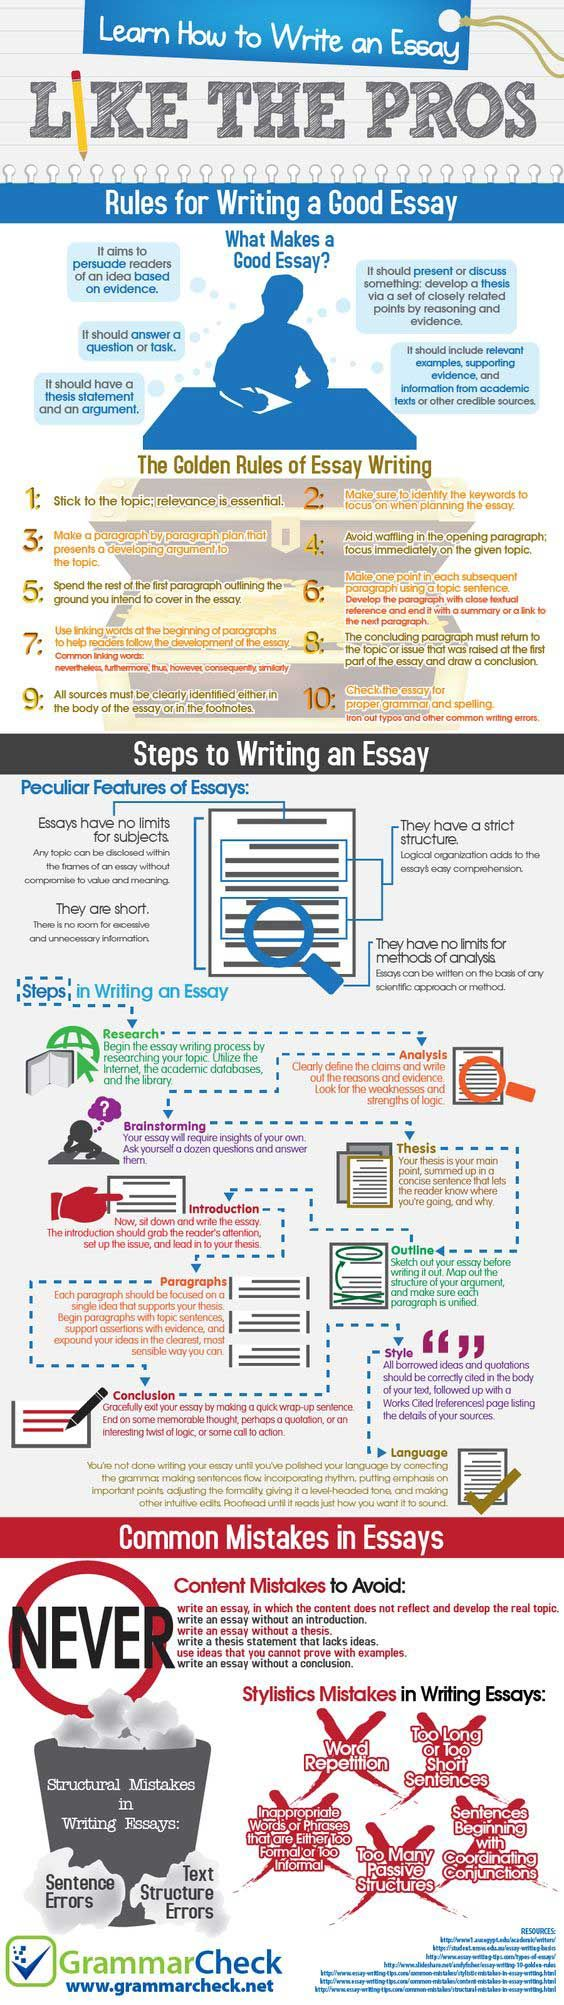 sample essay for editing